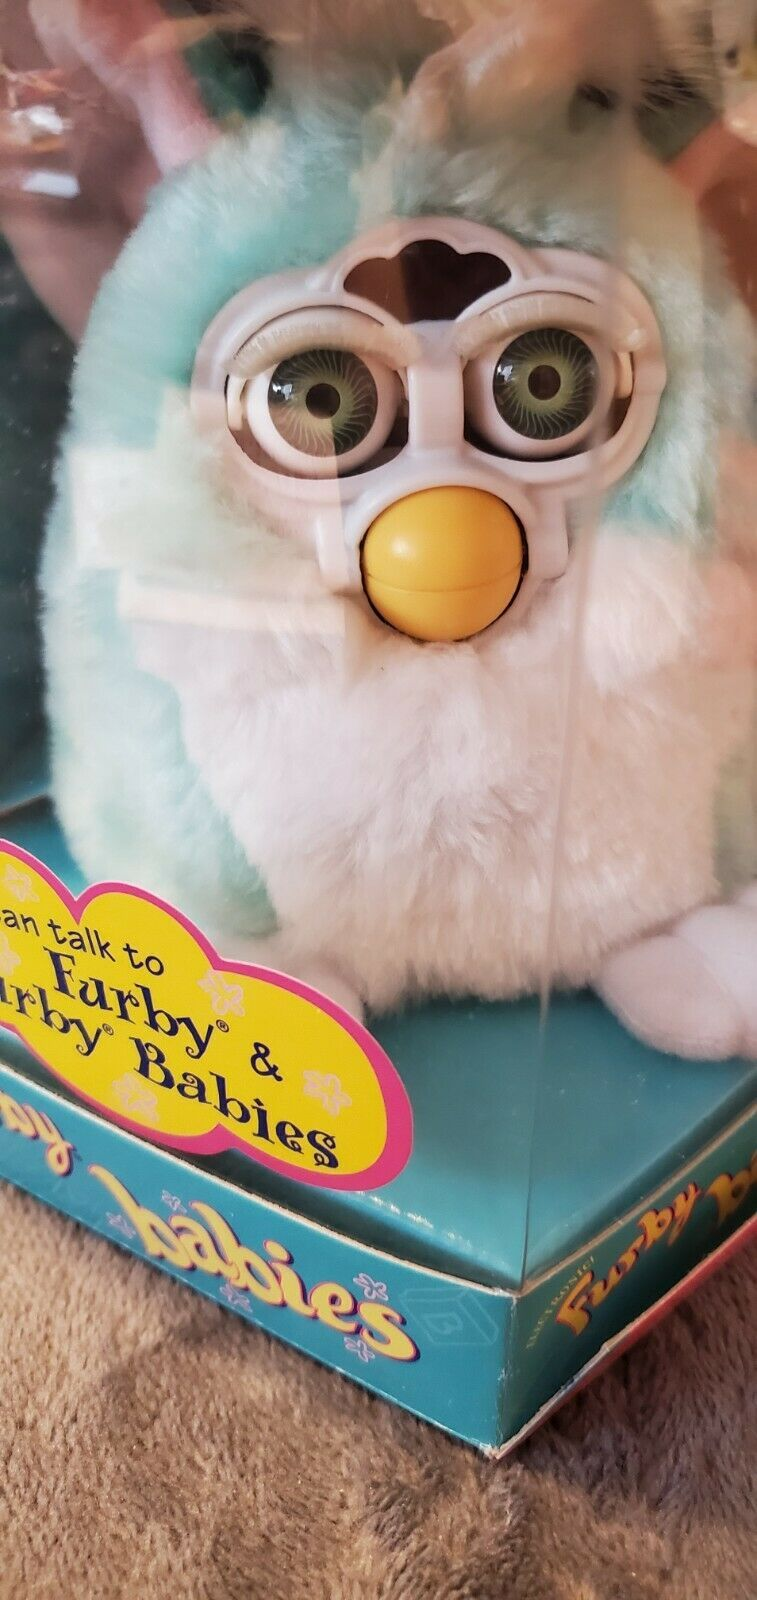 1ST ORIGINAL GREEN AND WHITE SKUNK FURBY BABY PINK EARS RARE GREEN EYES 70-940 - $100.00